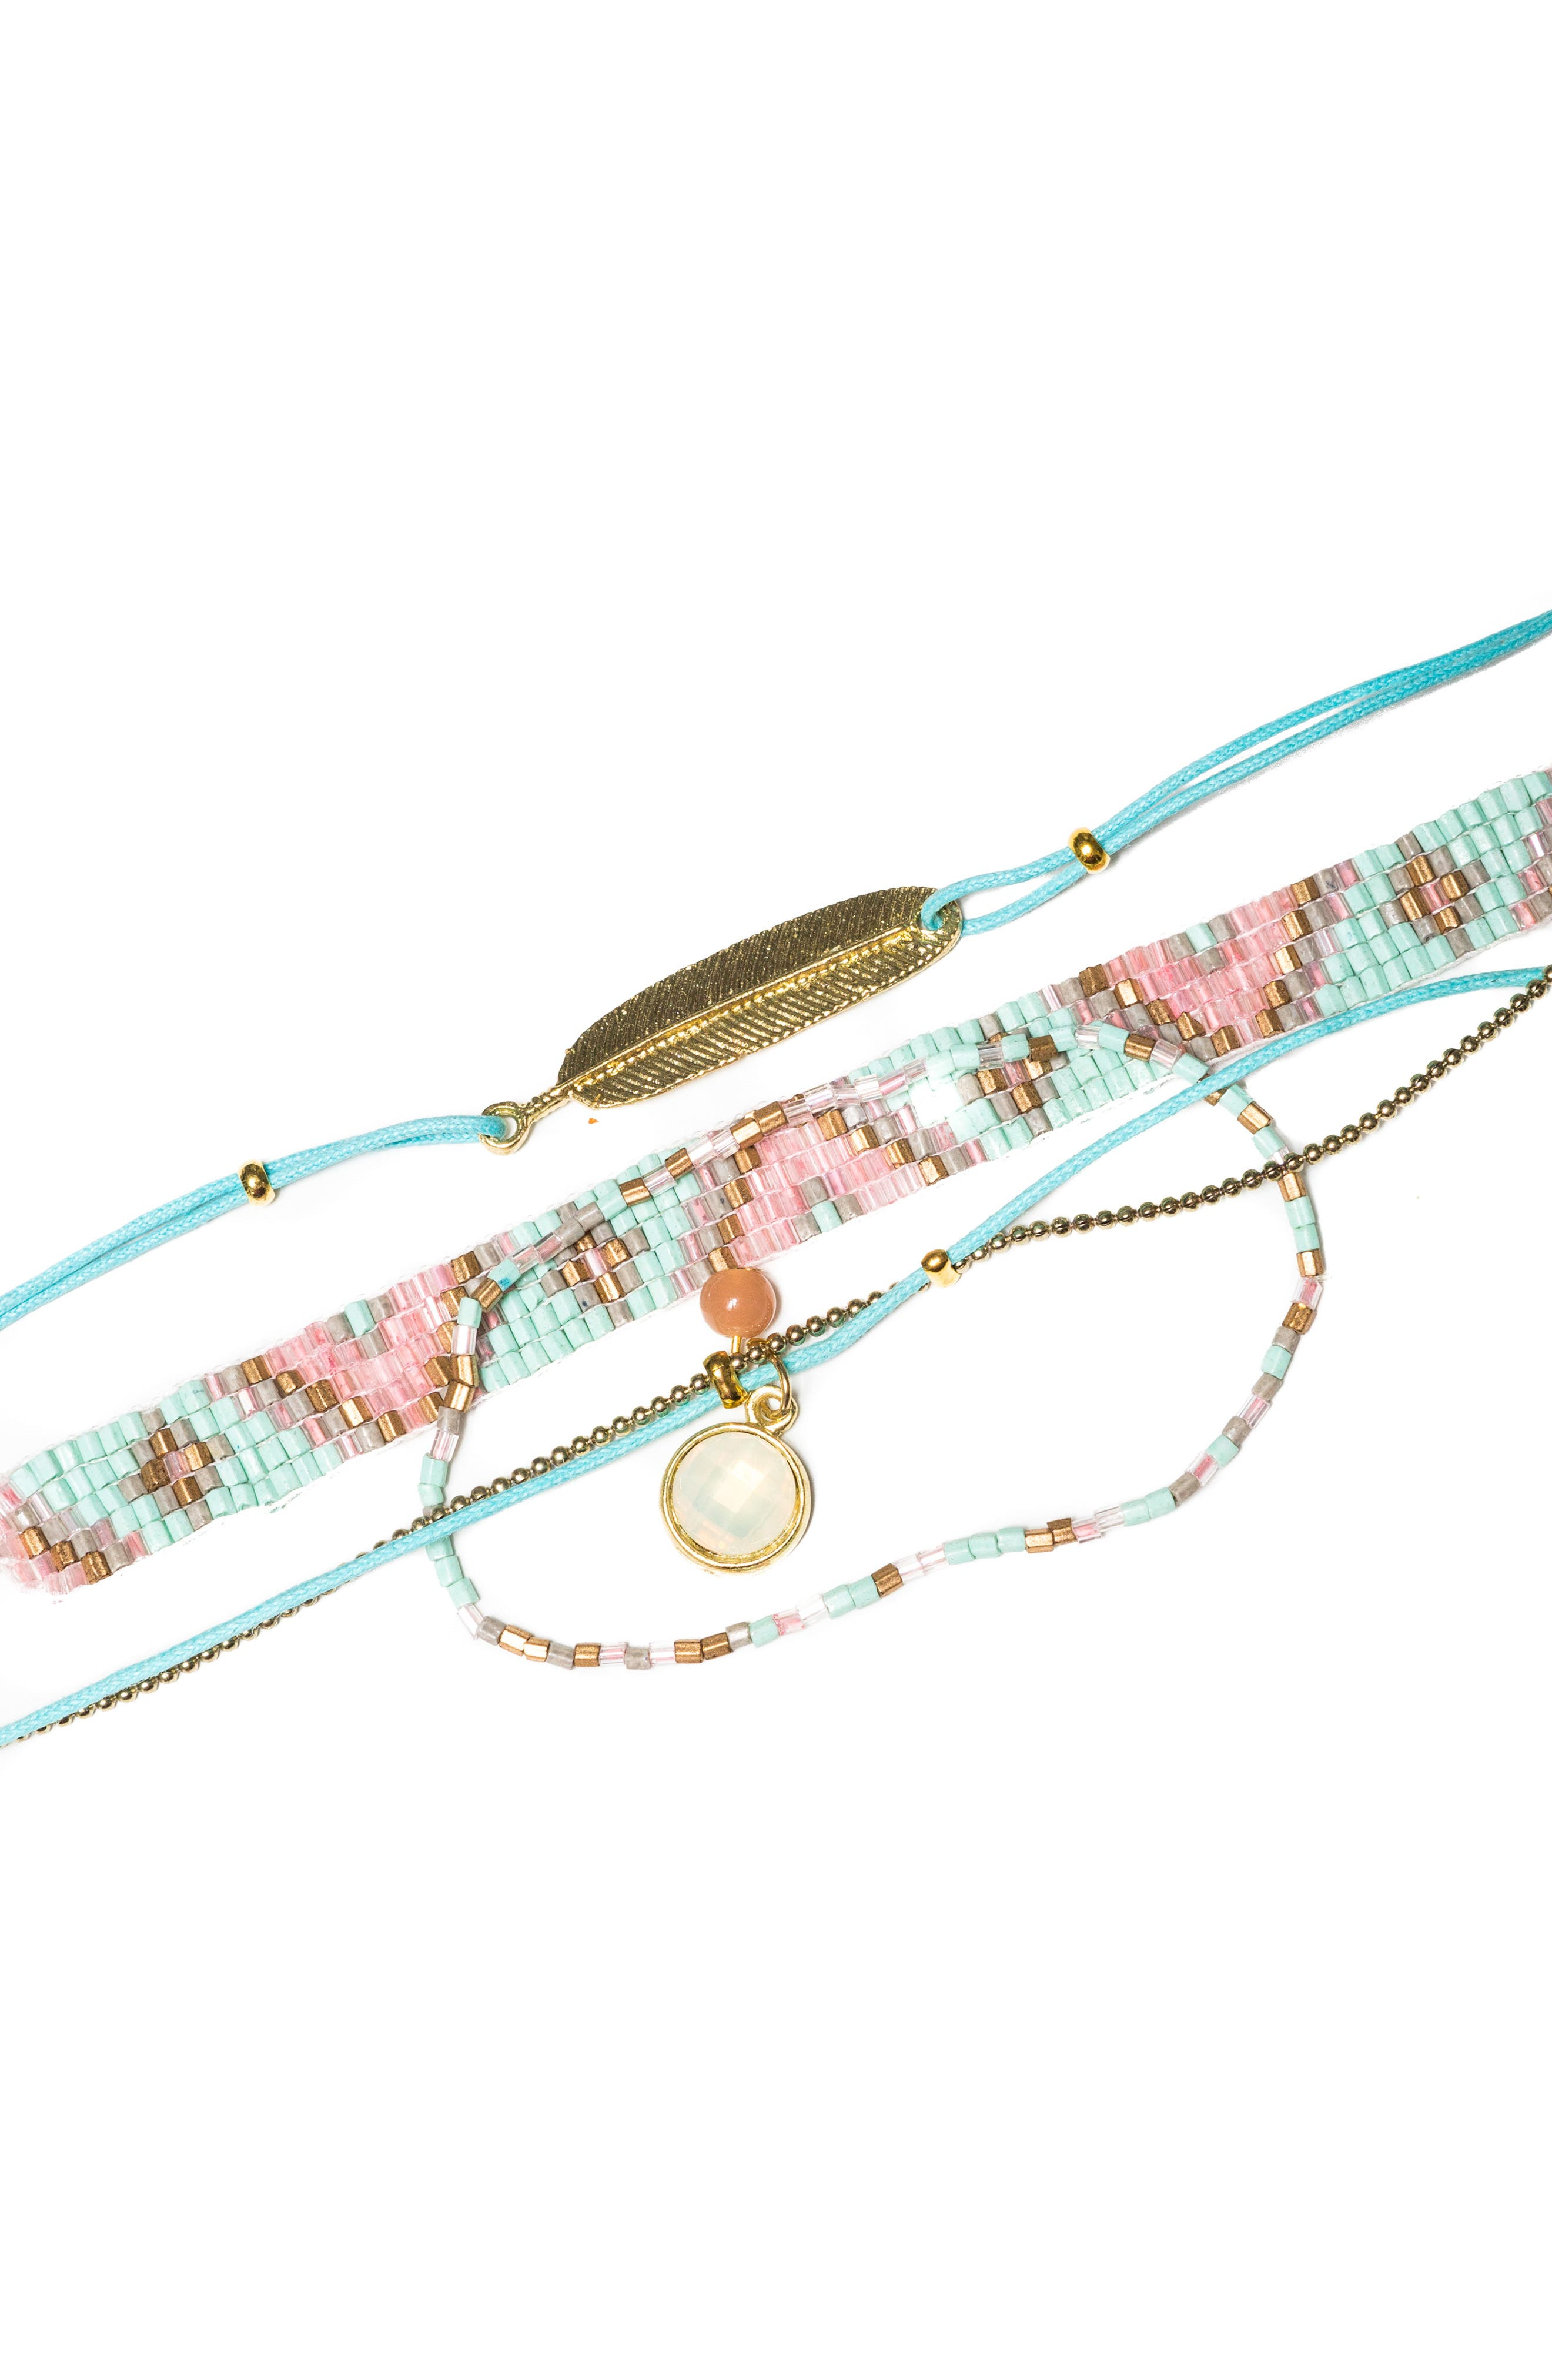 Set of 4 Bead & Charm Bracelets,                             Main thumbnail 1, color,                             Pink/ Turquoise/ Amber